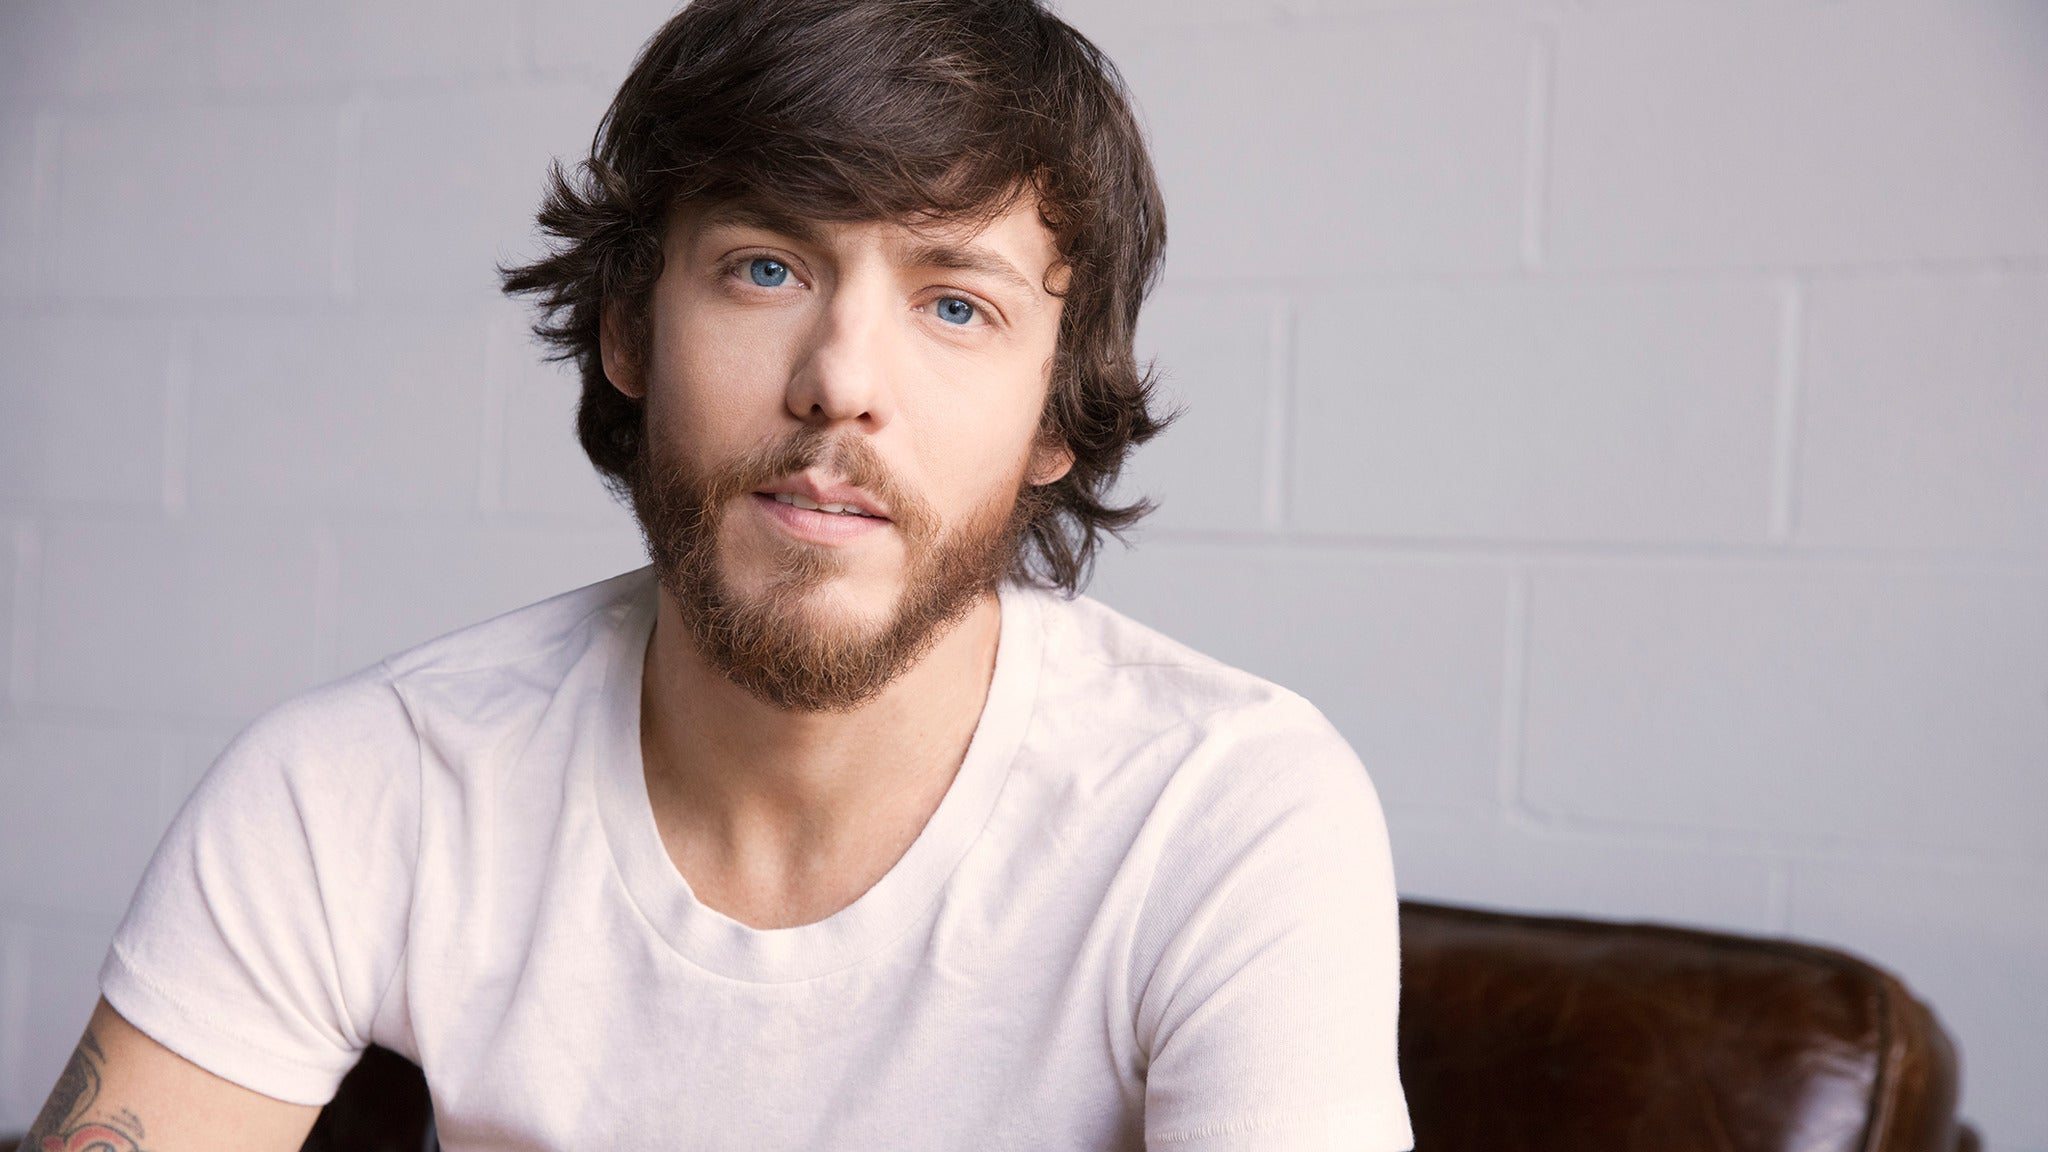 Chris Janson at Cheyenne Civic Center